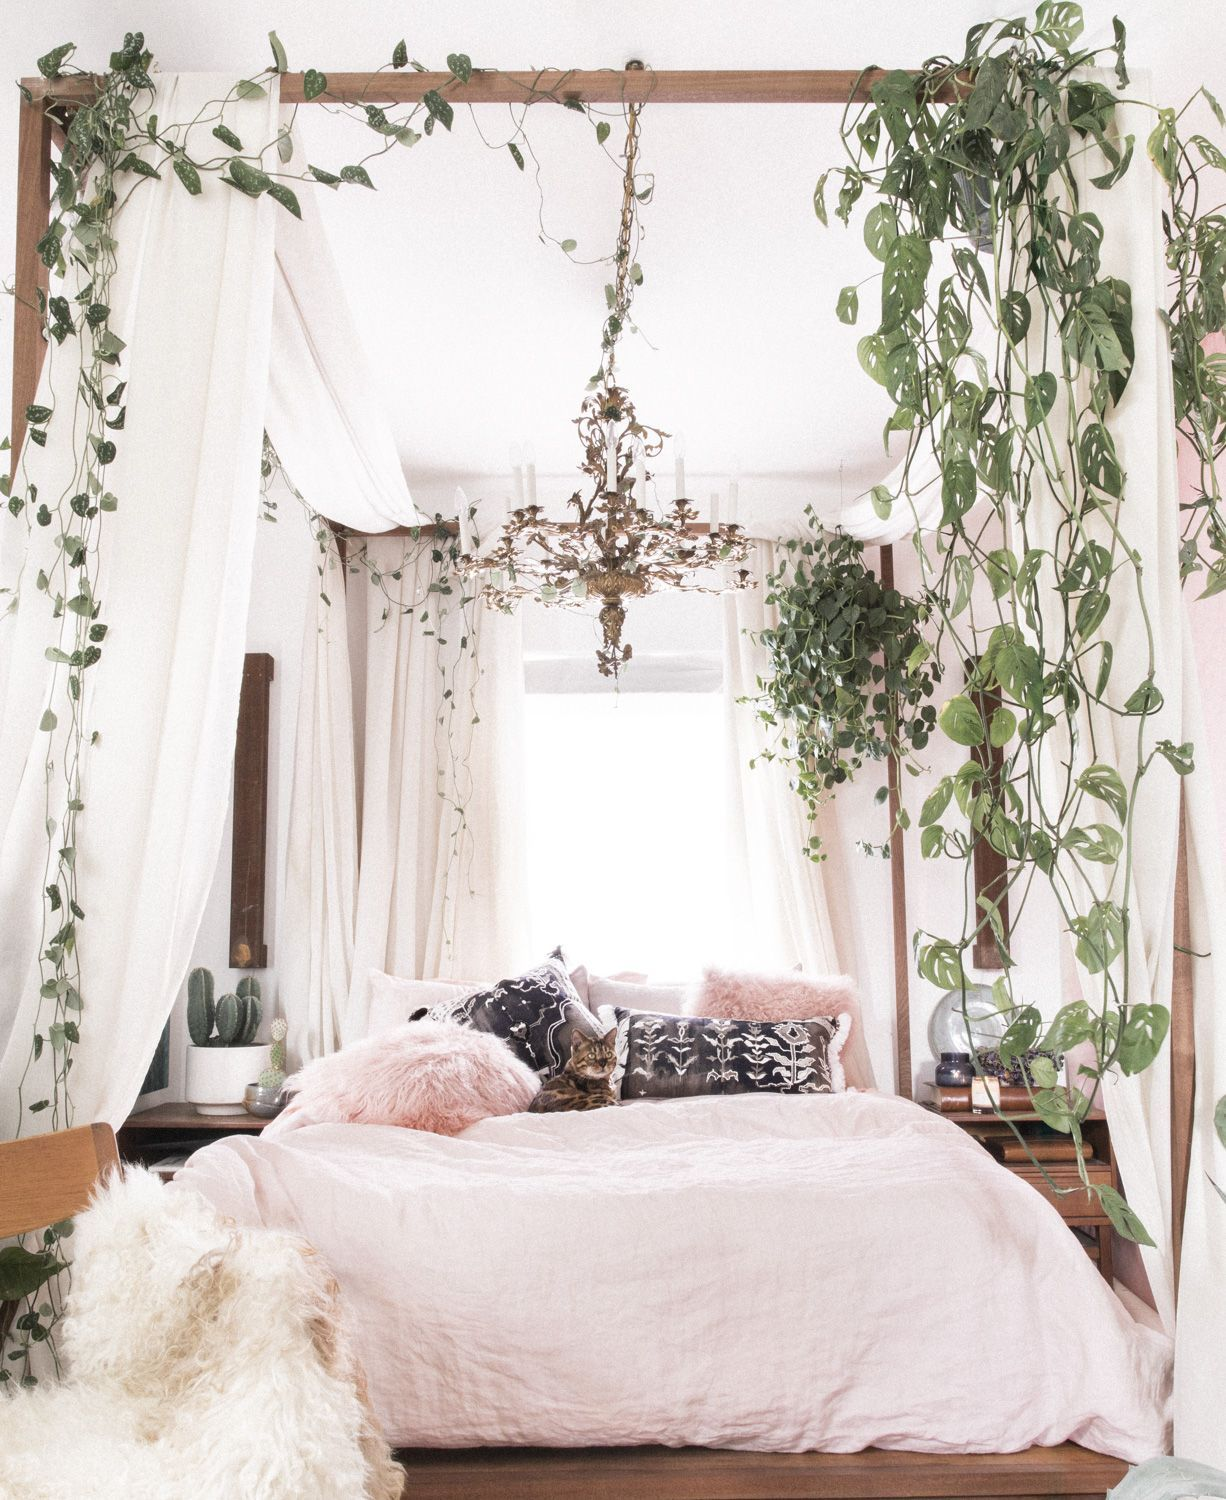 One couple turned a squarefoot rental into a plantfilled boho